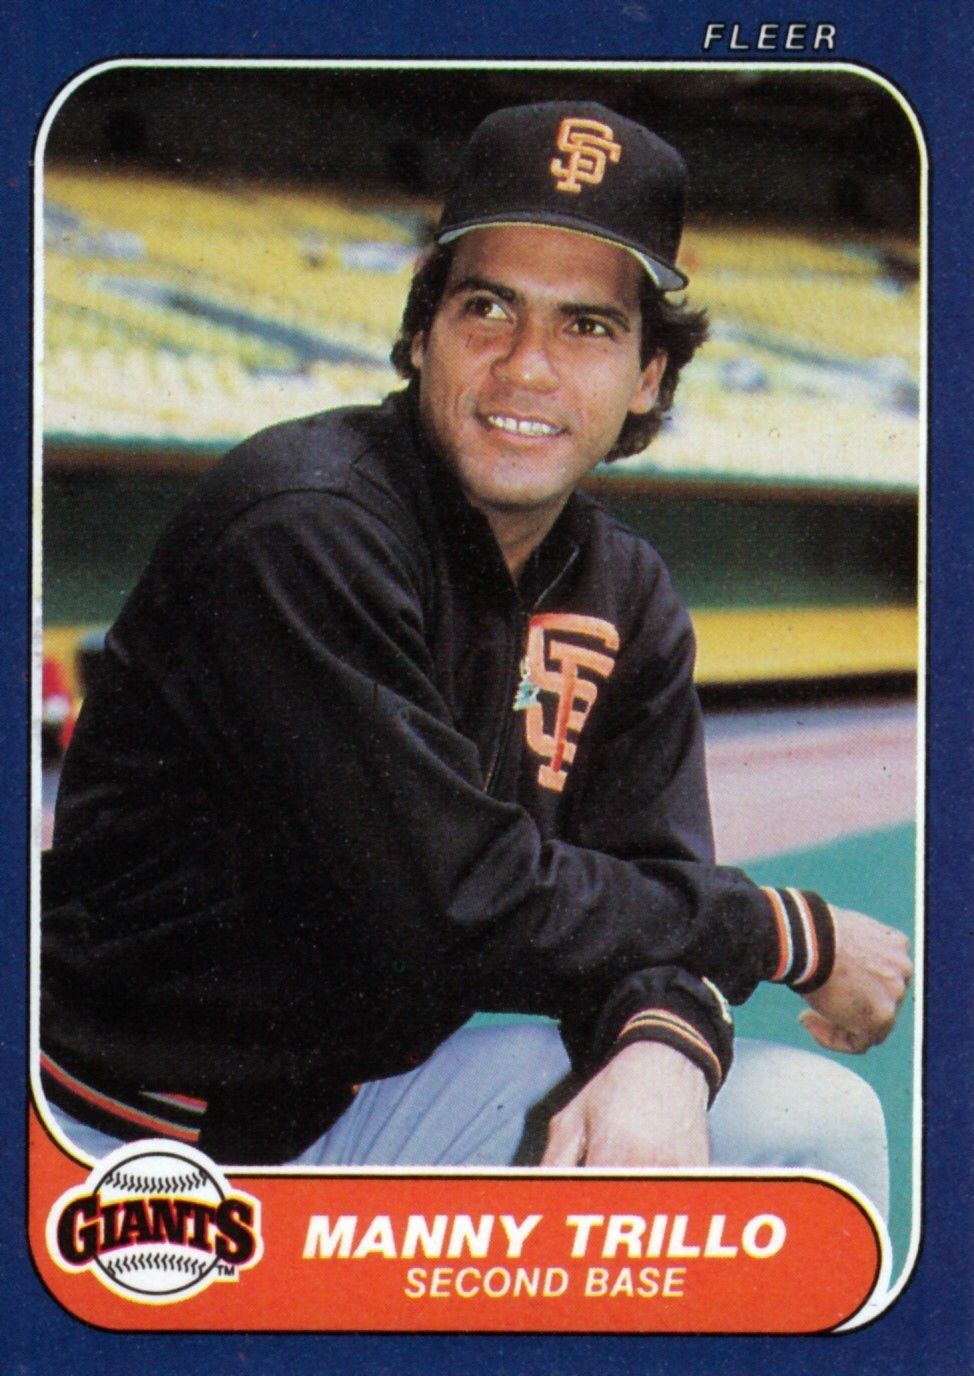 Pin by Durr Gruver on Fleer Baseball Cards Famous